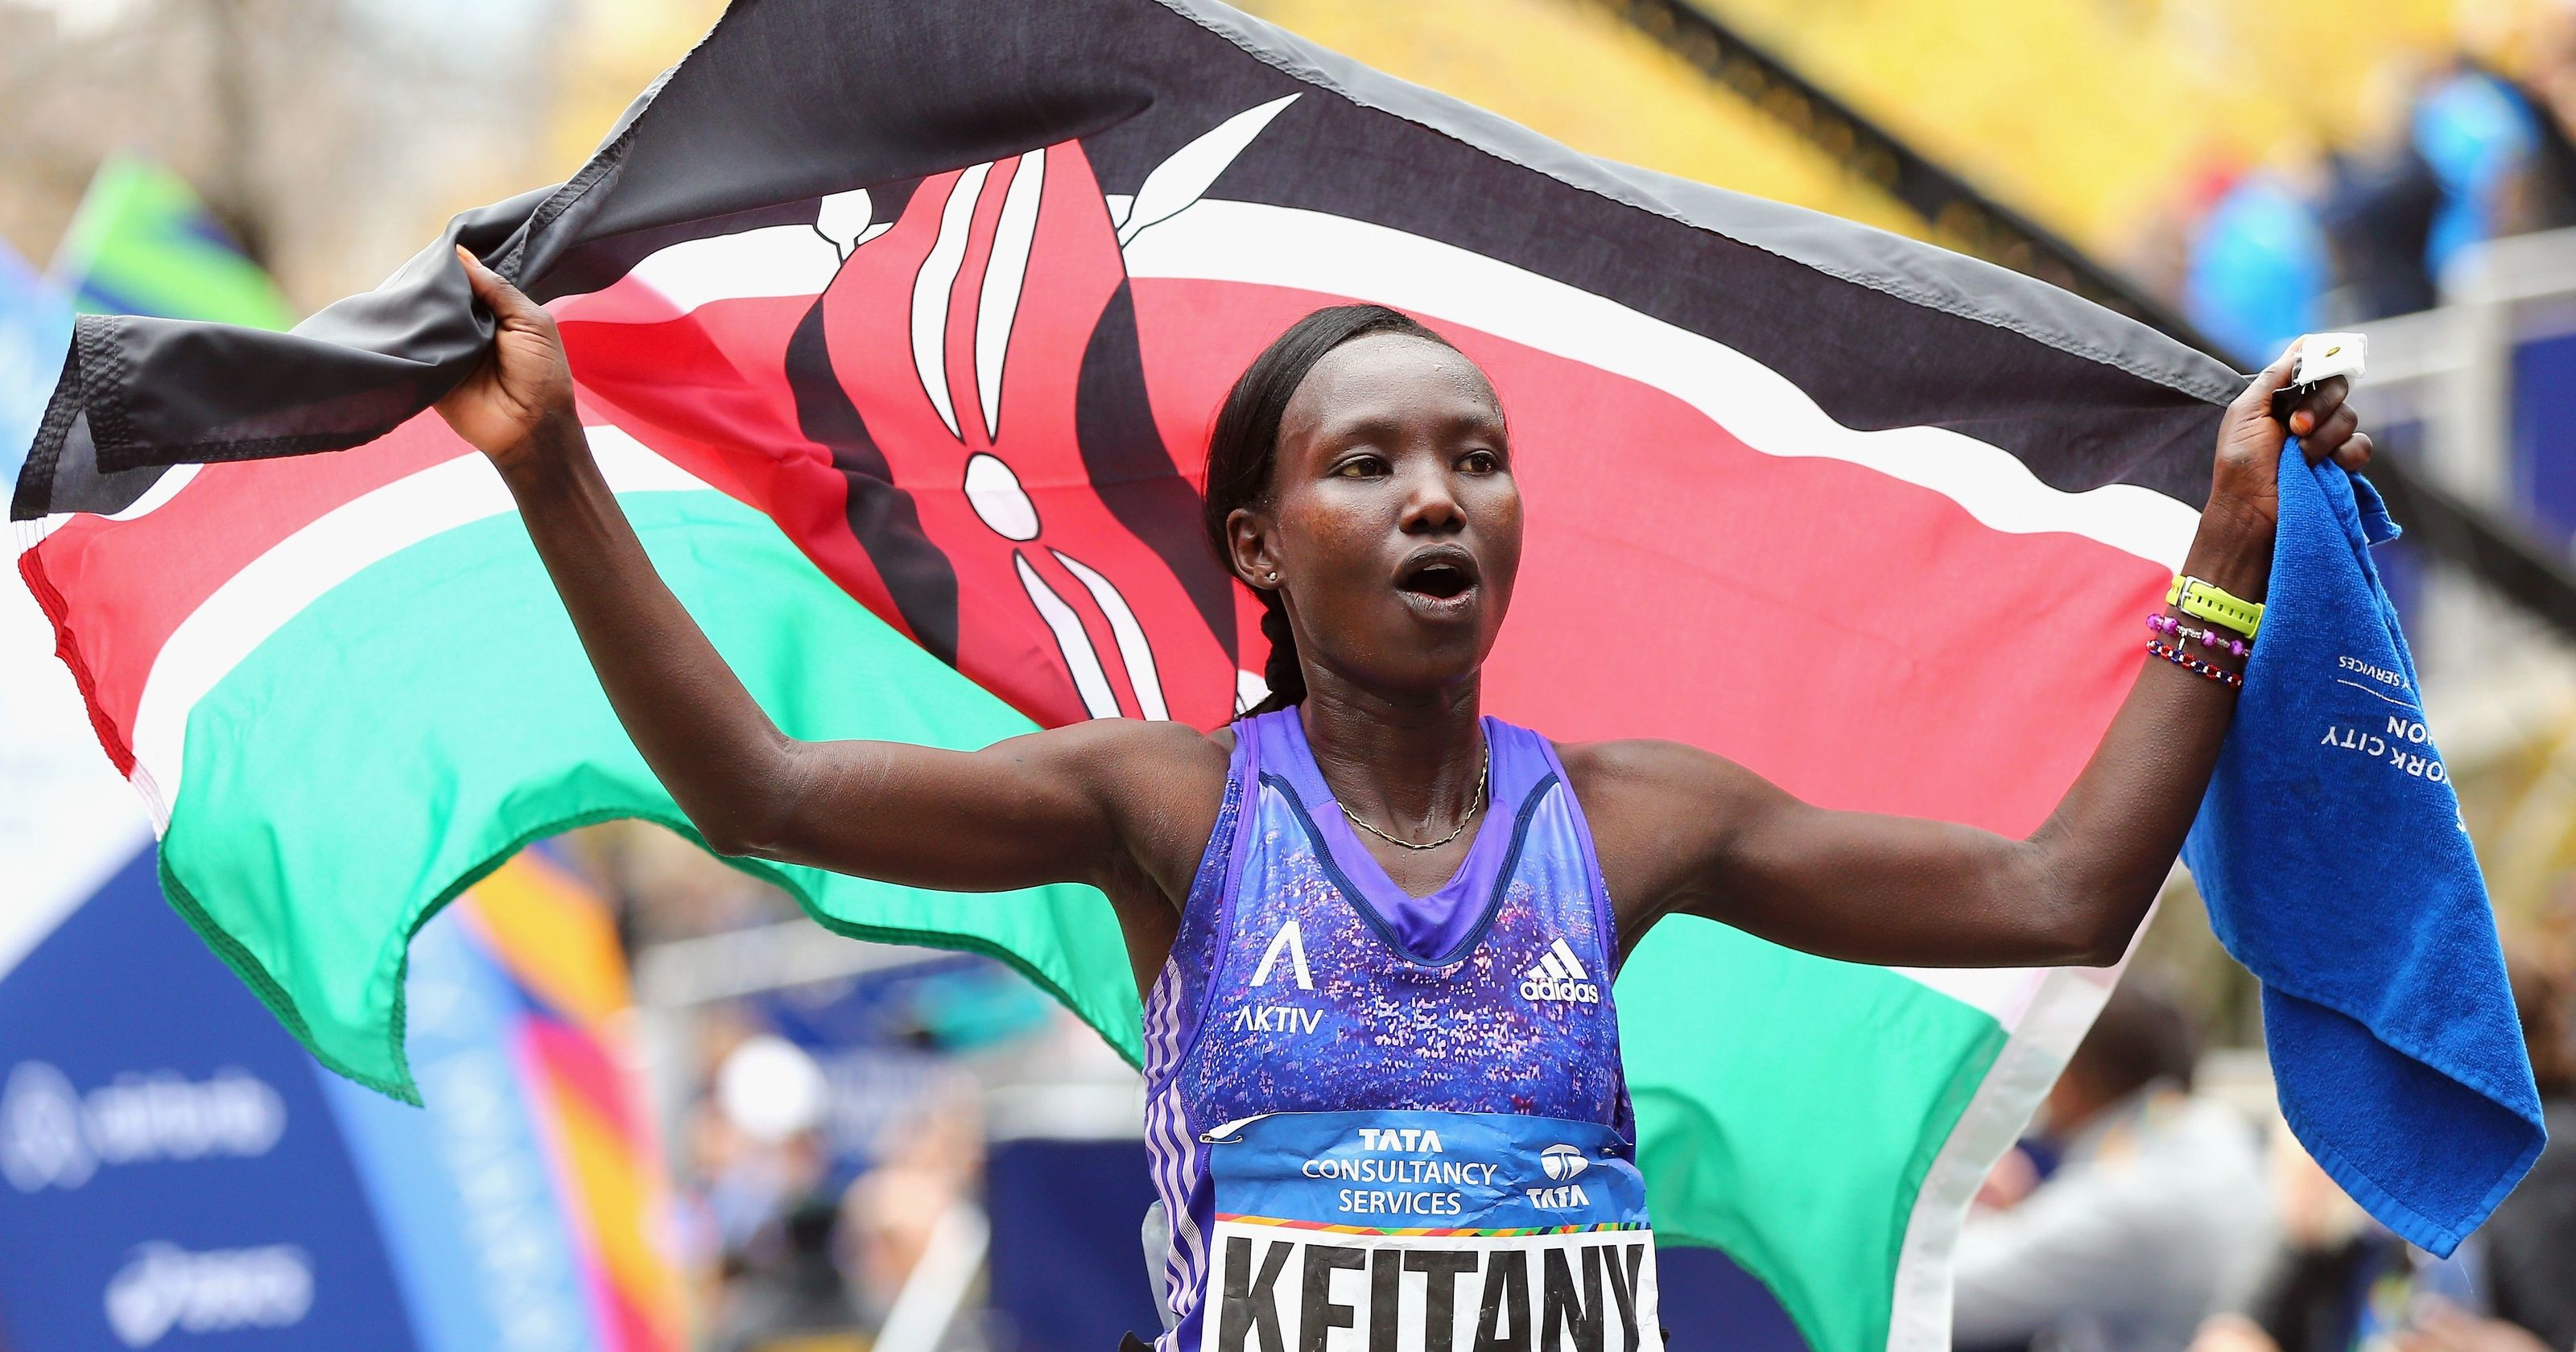 Mary Keitany has set her sights on breaking the world marathon record next year